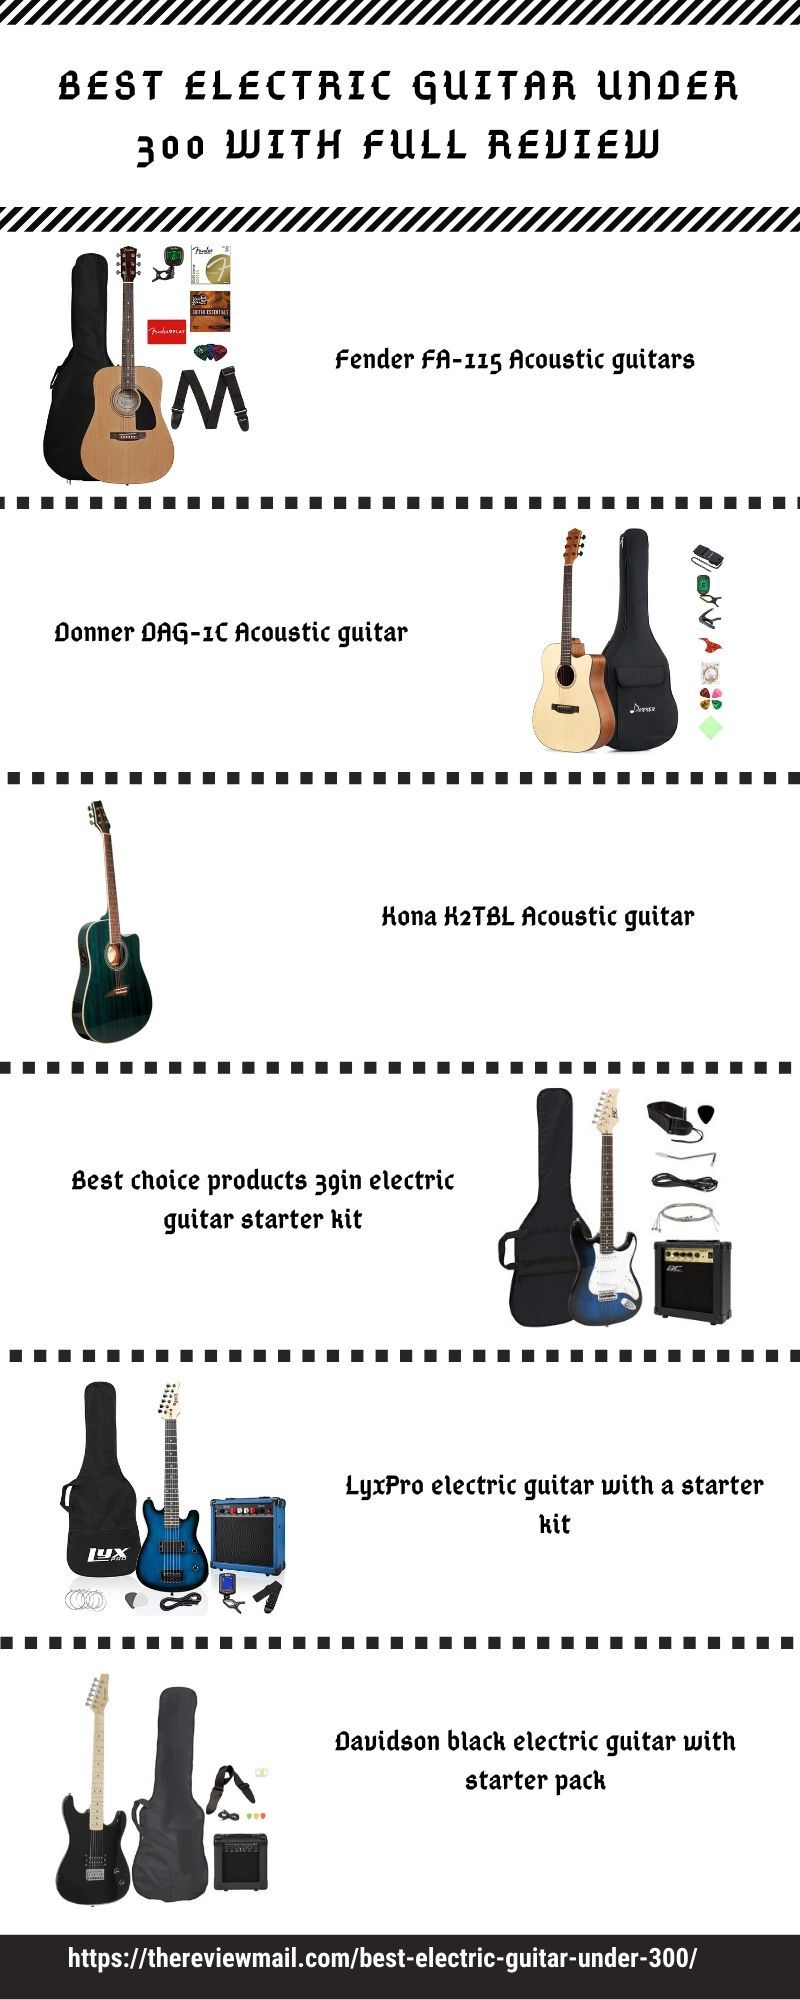 Best Electric Guitar Under 300 With Full Review In 2020 Cool Electric Guitars Black Electric Guitar Electric Guitar